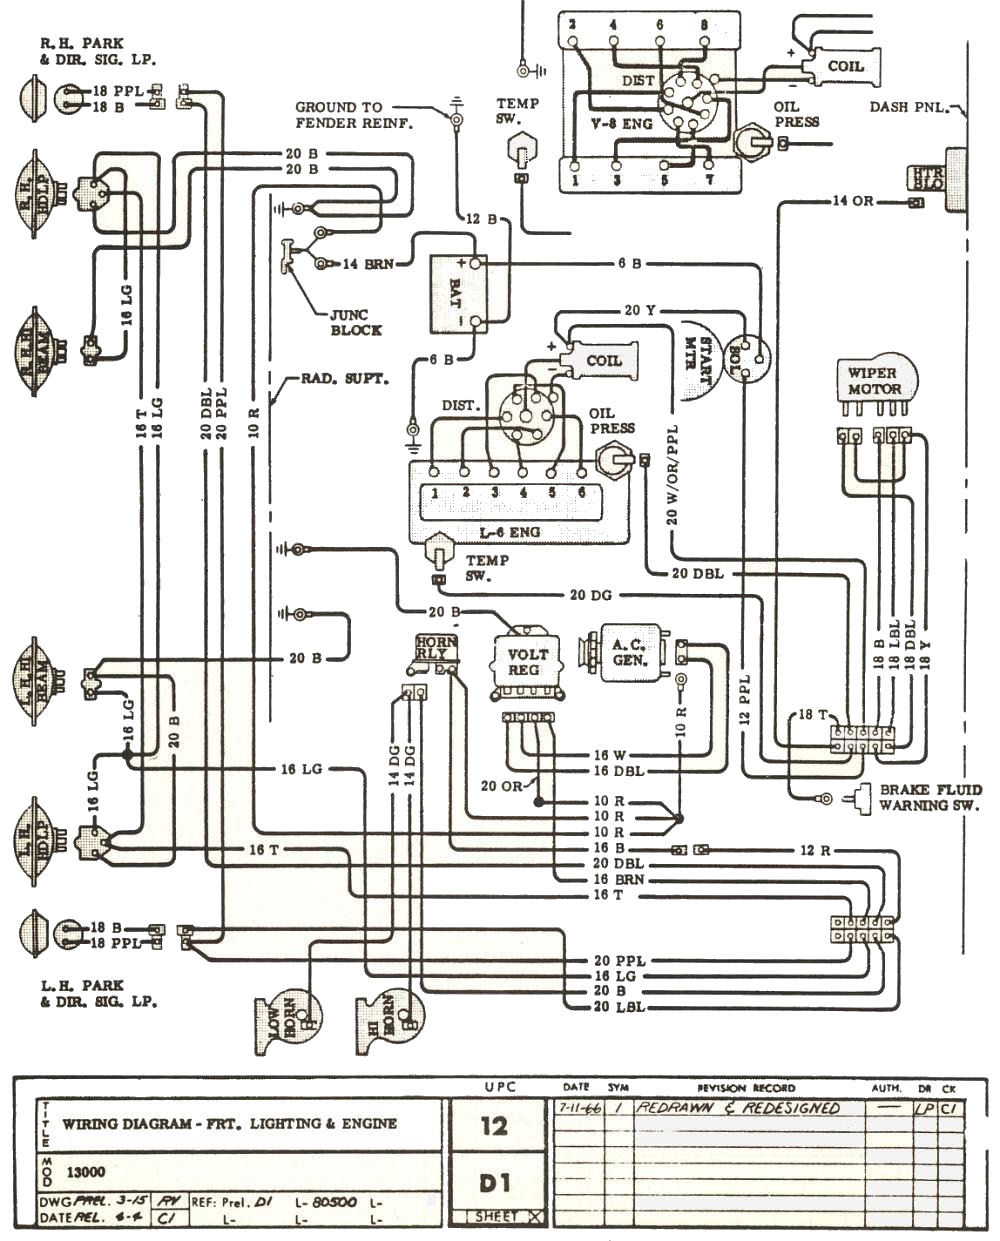 hight resolution of 1967 chevelle tachometer wiring diagram wiring diagram with description